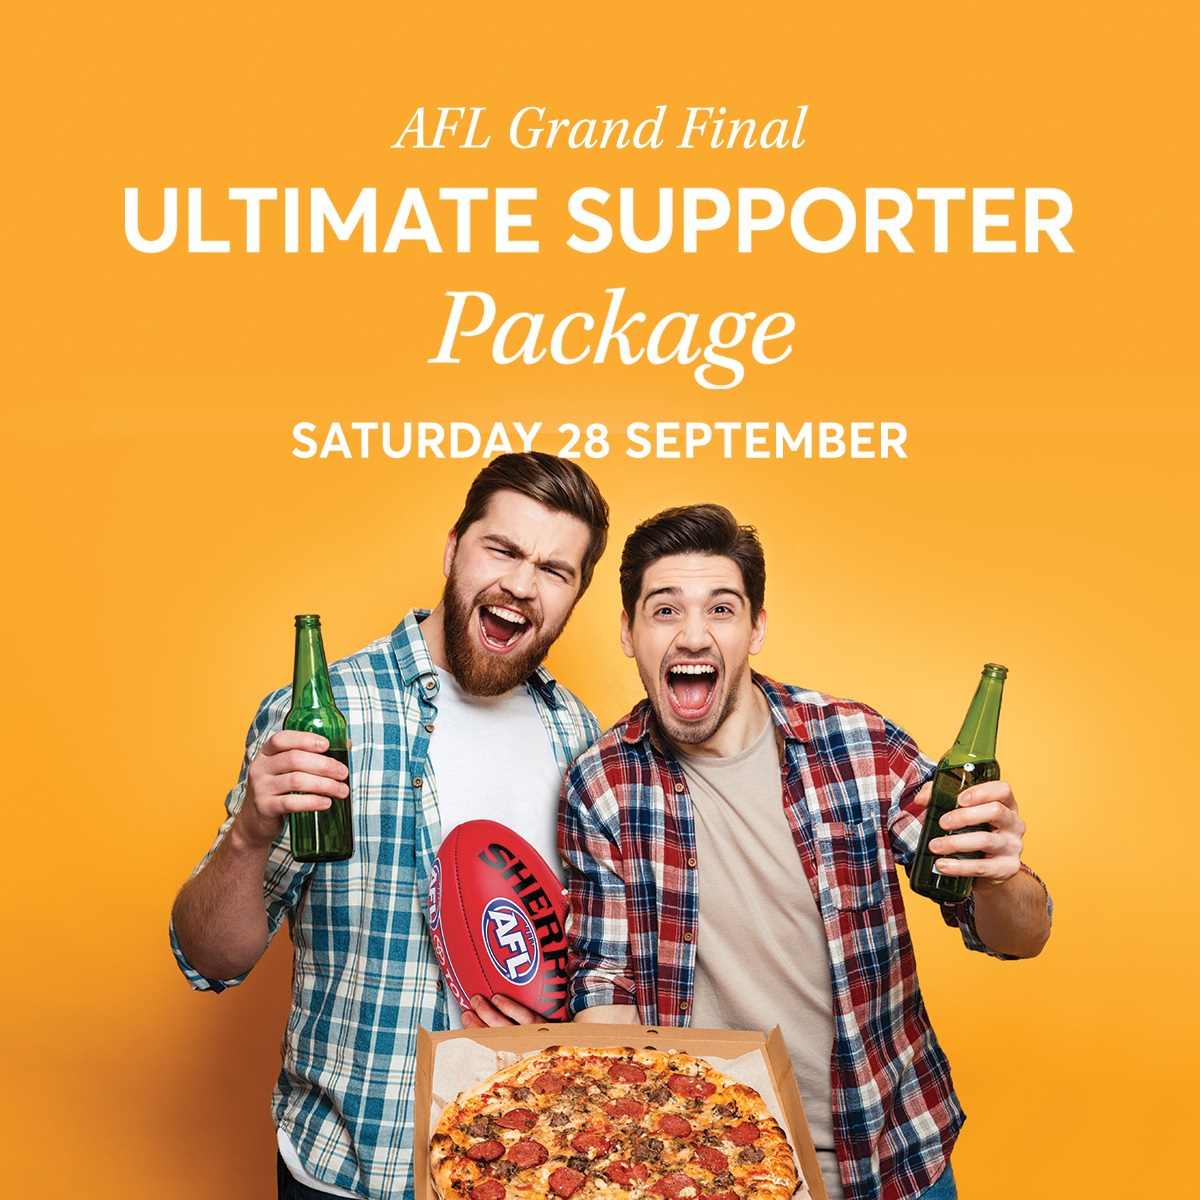 AFL Grand Final 'Supporters' Package Square